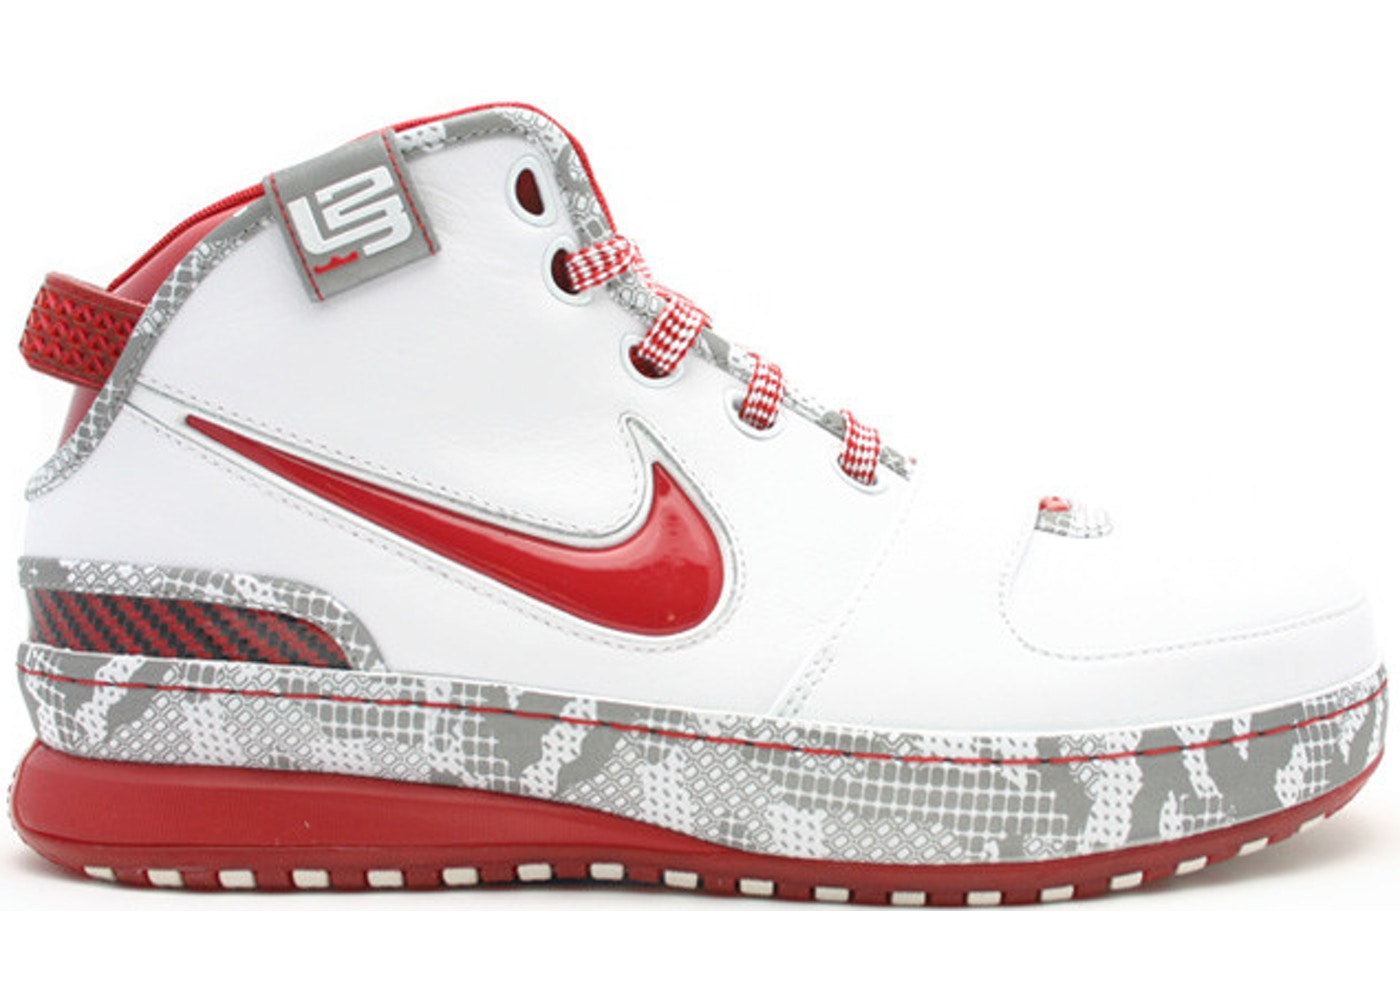 premium selection 2150c ca5f8 Nike LeBron 6 Shoes - Last Sale